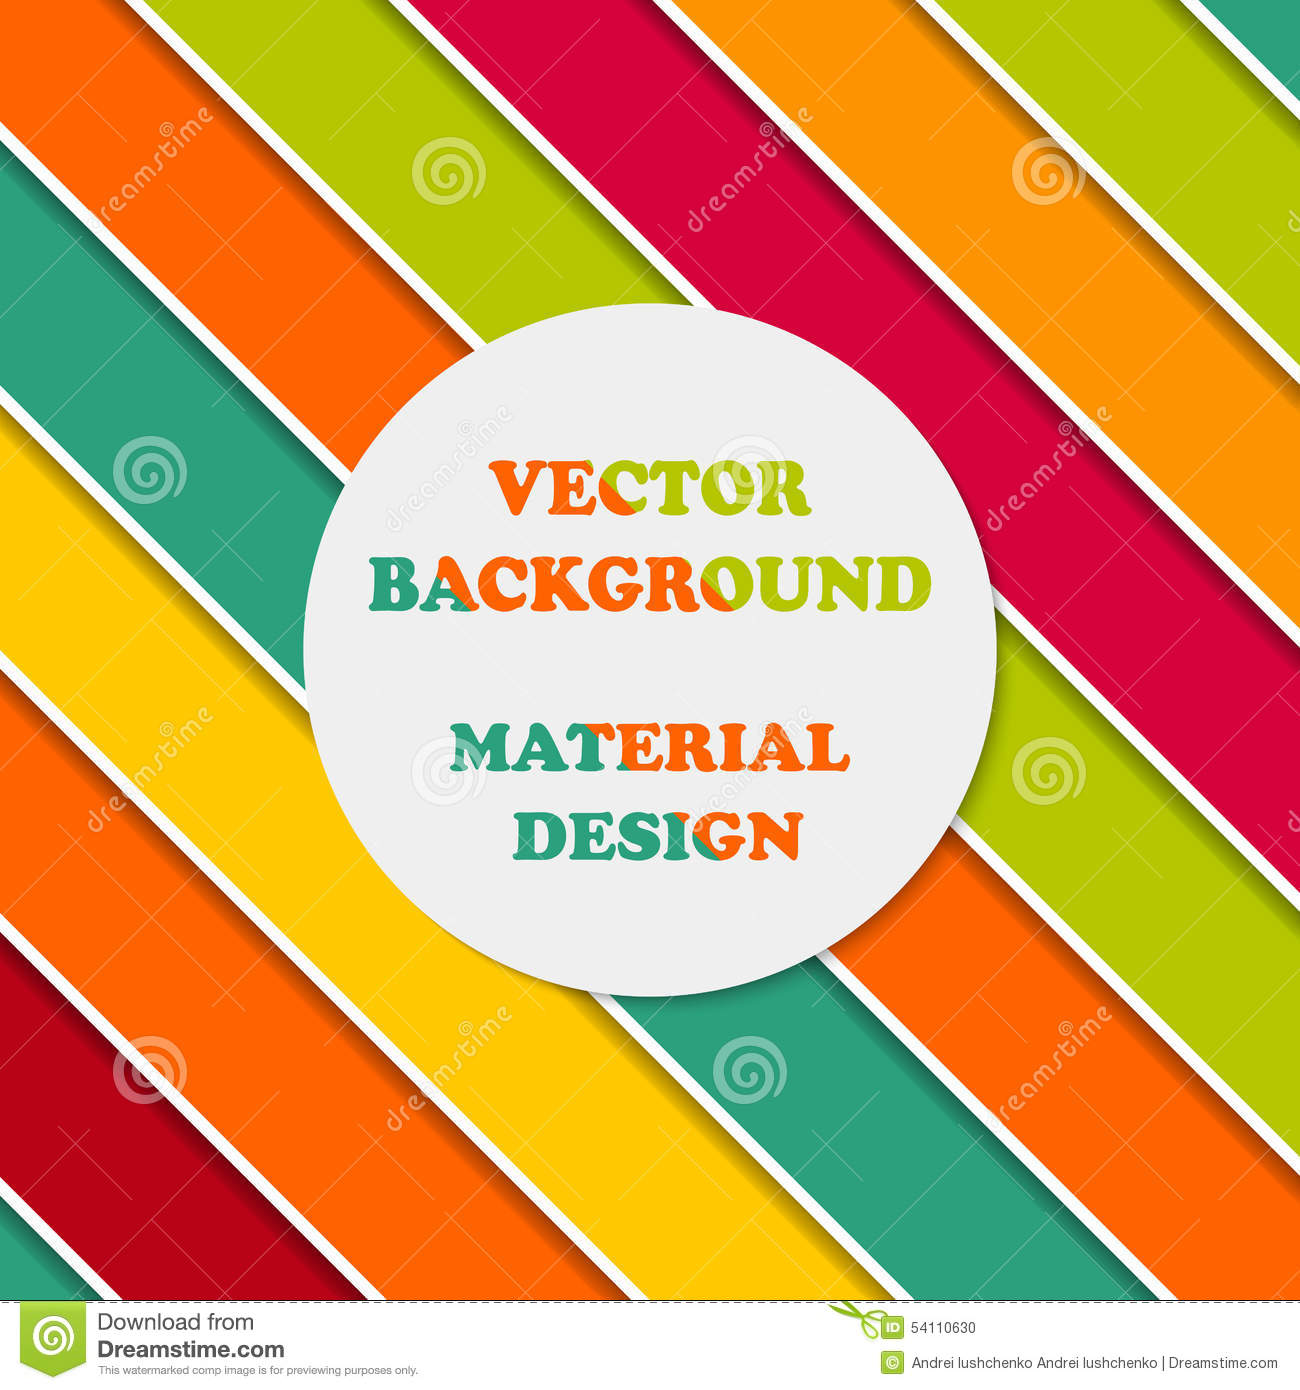 Download Wallpaper Mobile Colorful - wallpapers-mobile-os-style-material-design-vector-colorful-background-place-your-text-vector-illustration-web-54110630  Best Photo Reference_97142.jpg